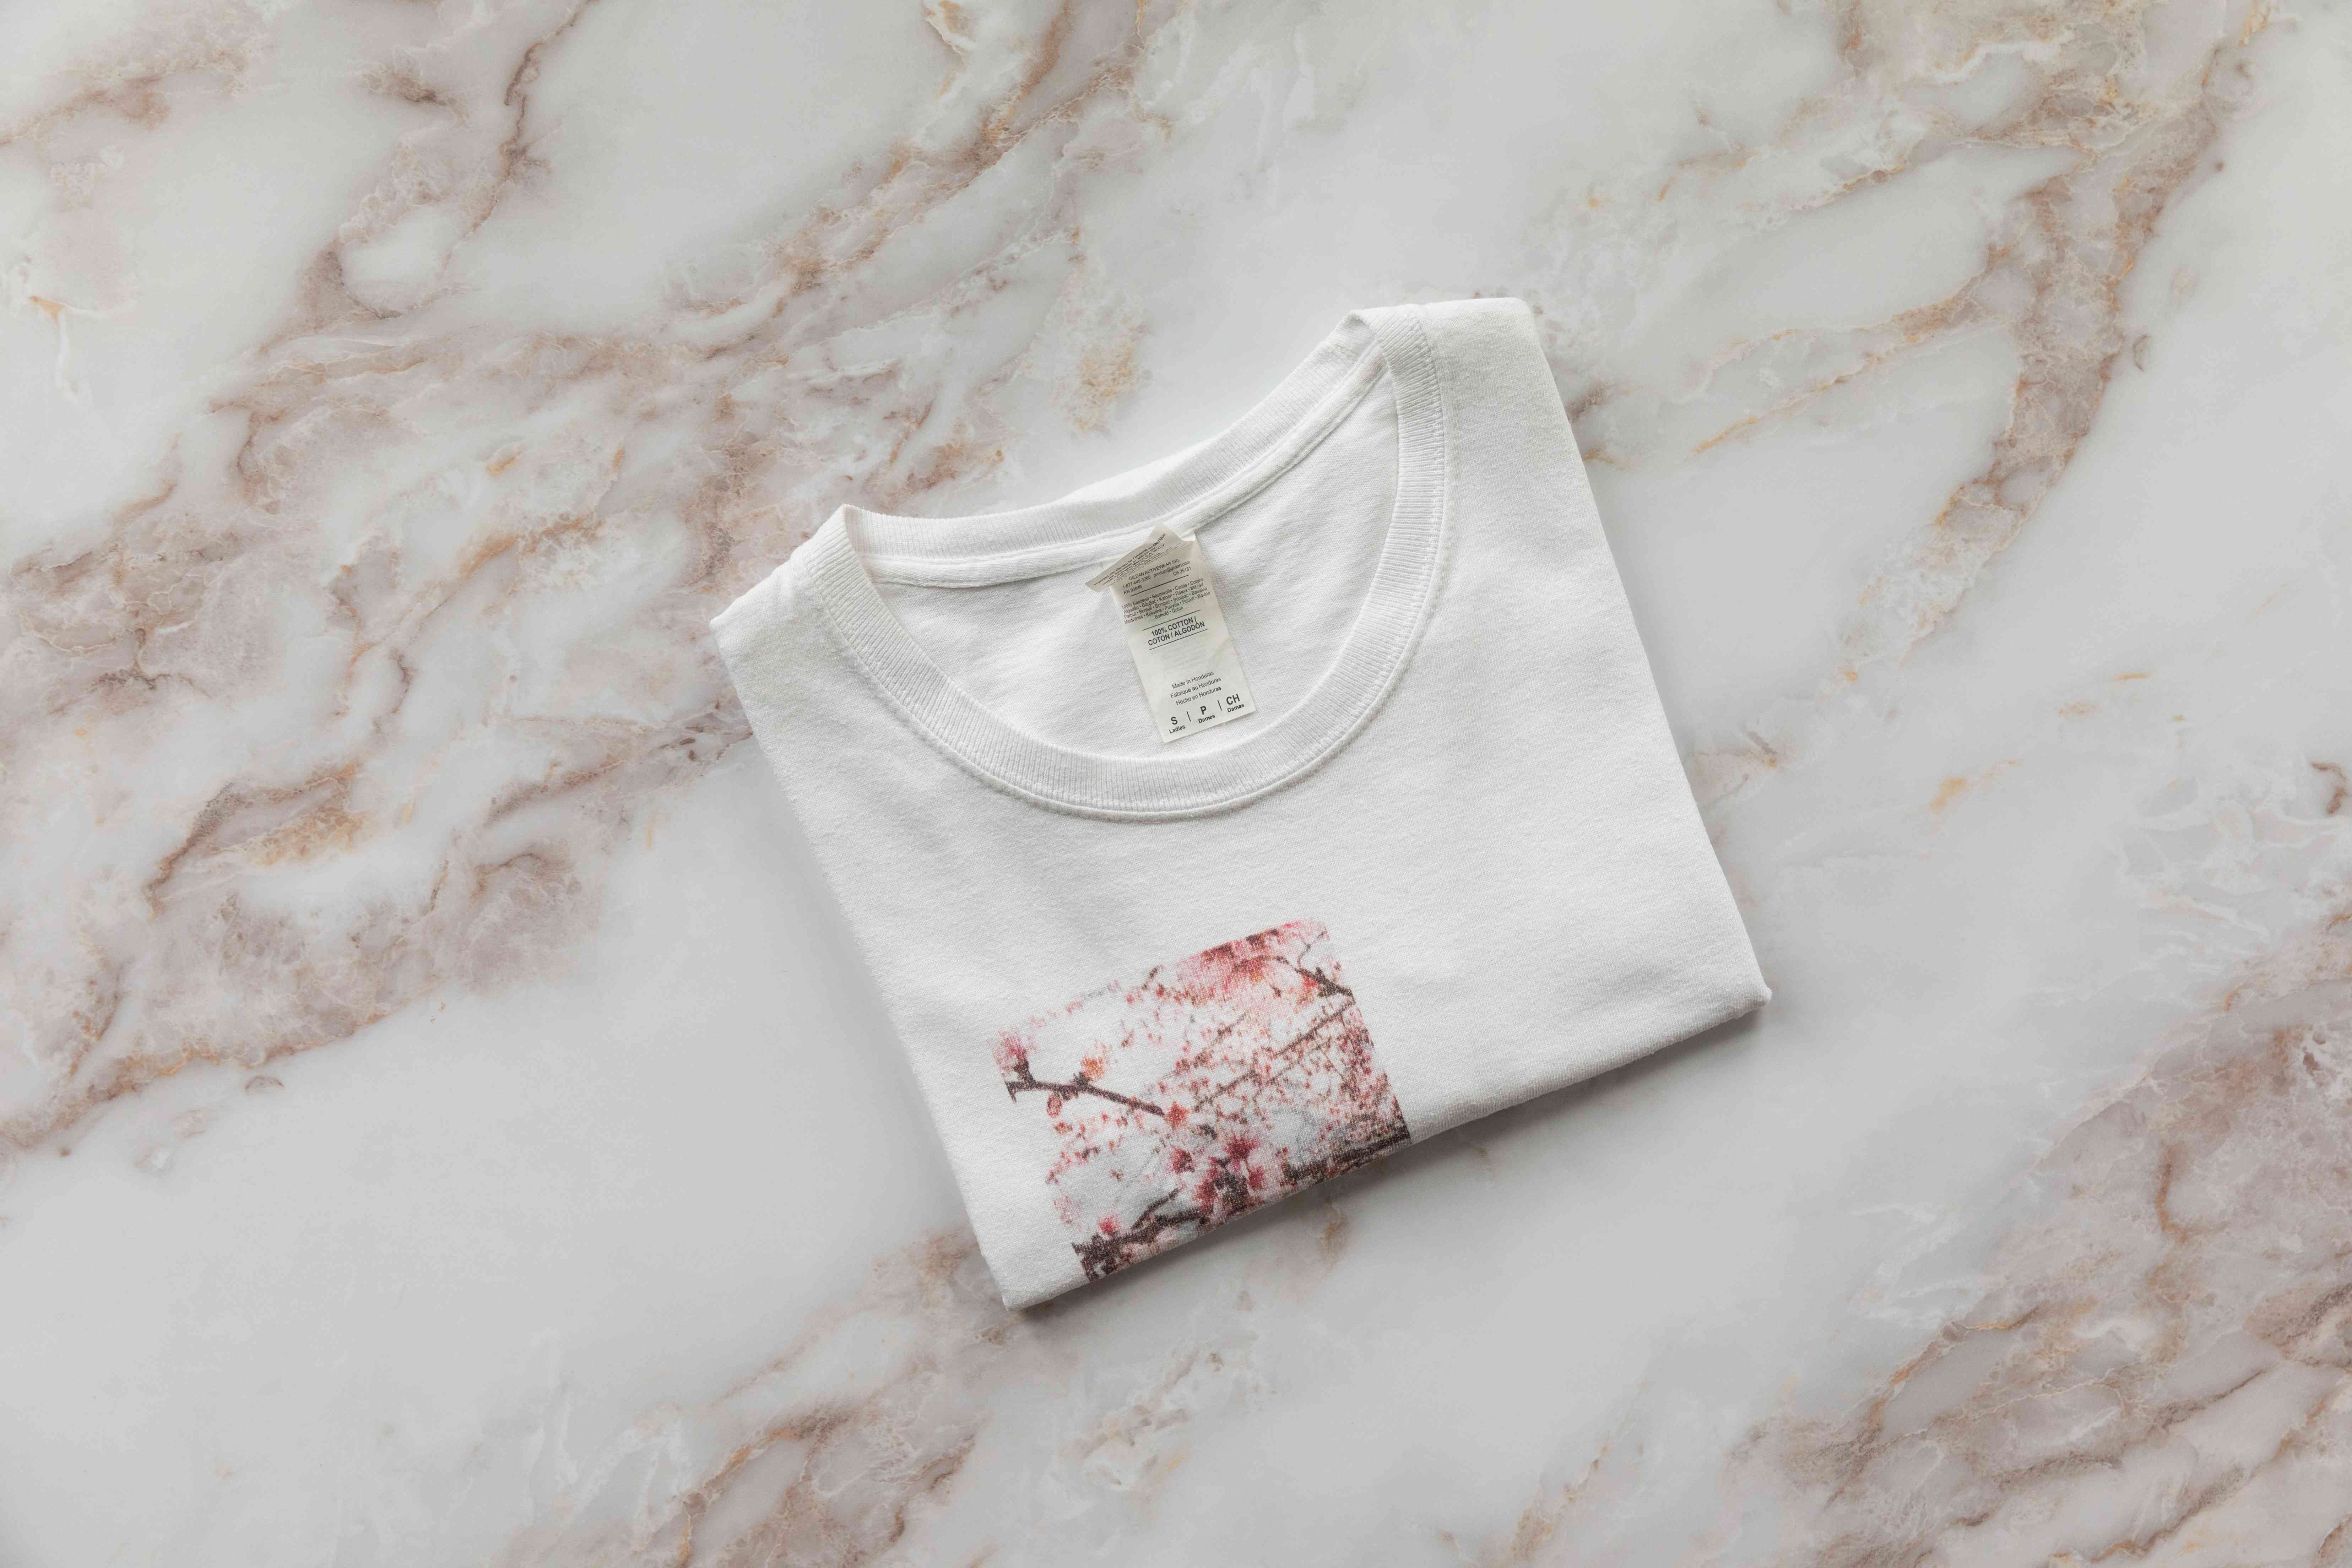 White t-shirt with red printed image folded neatly on white marbled surface